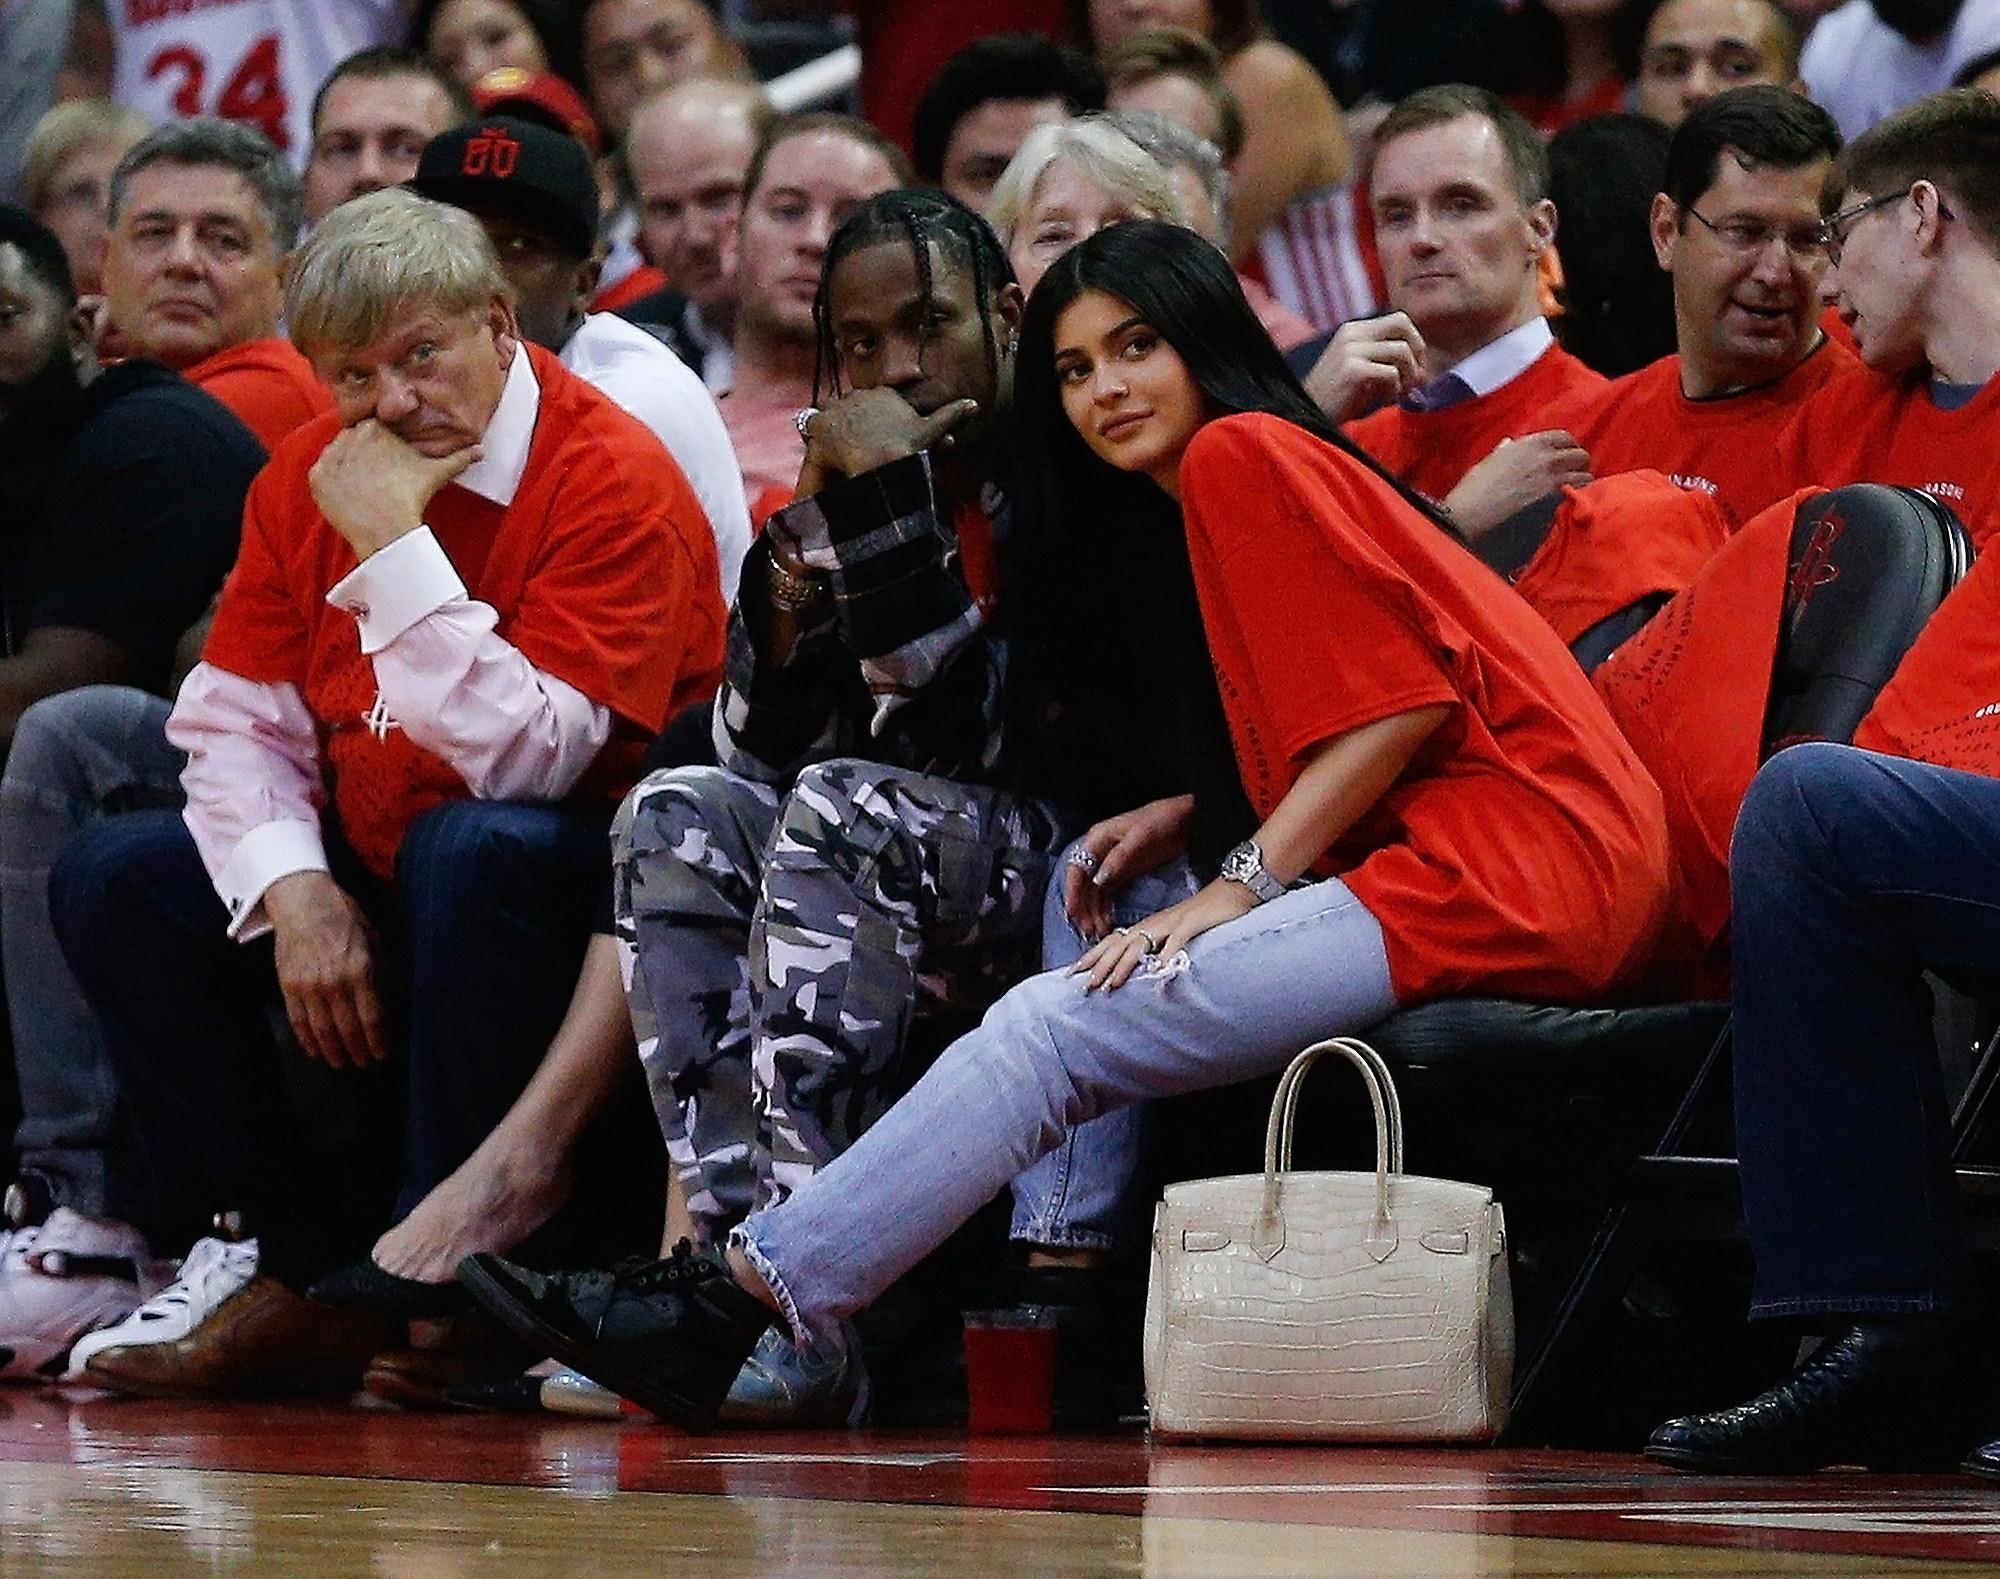 Travis Scott and Kylie Jenner in Apr 2017